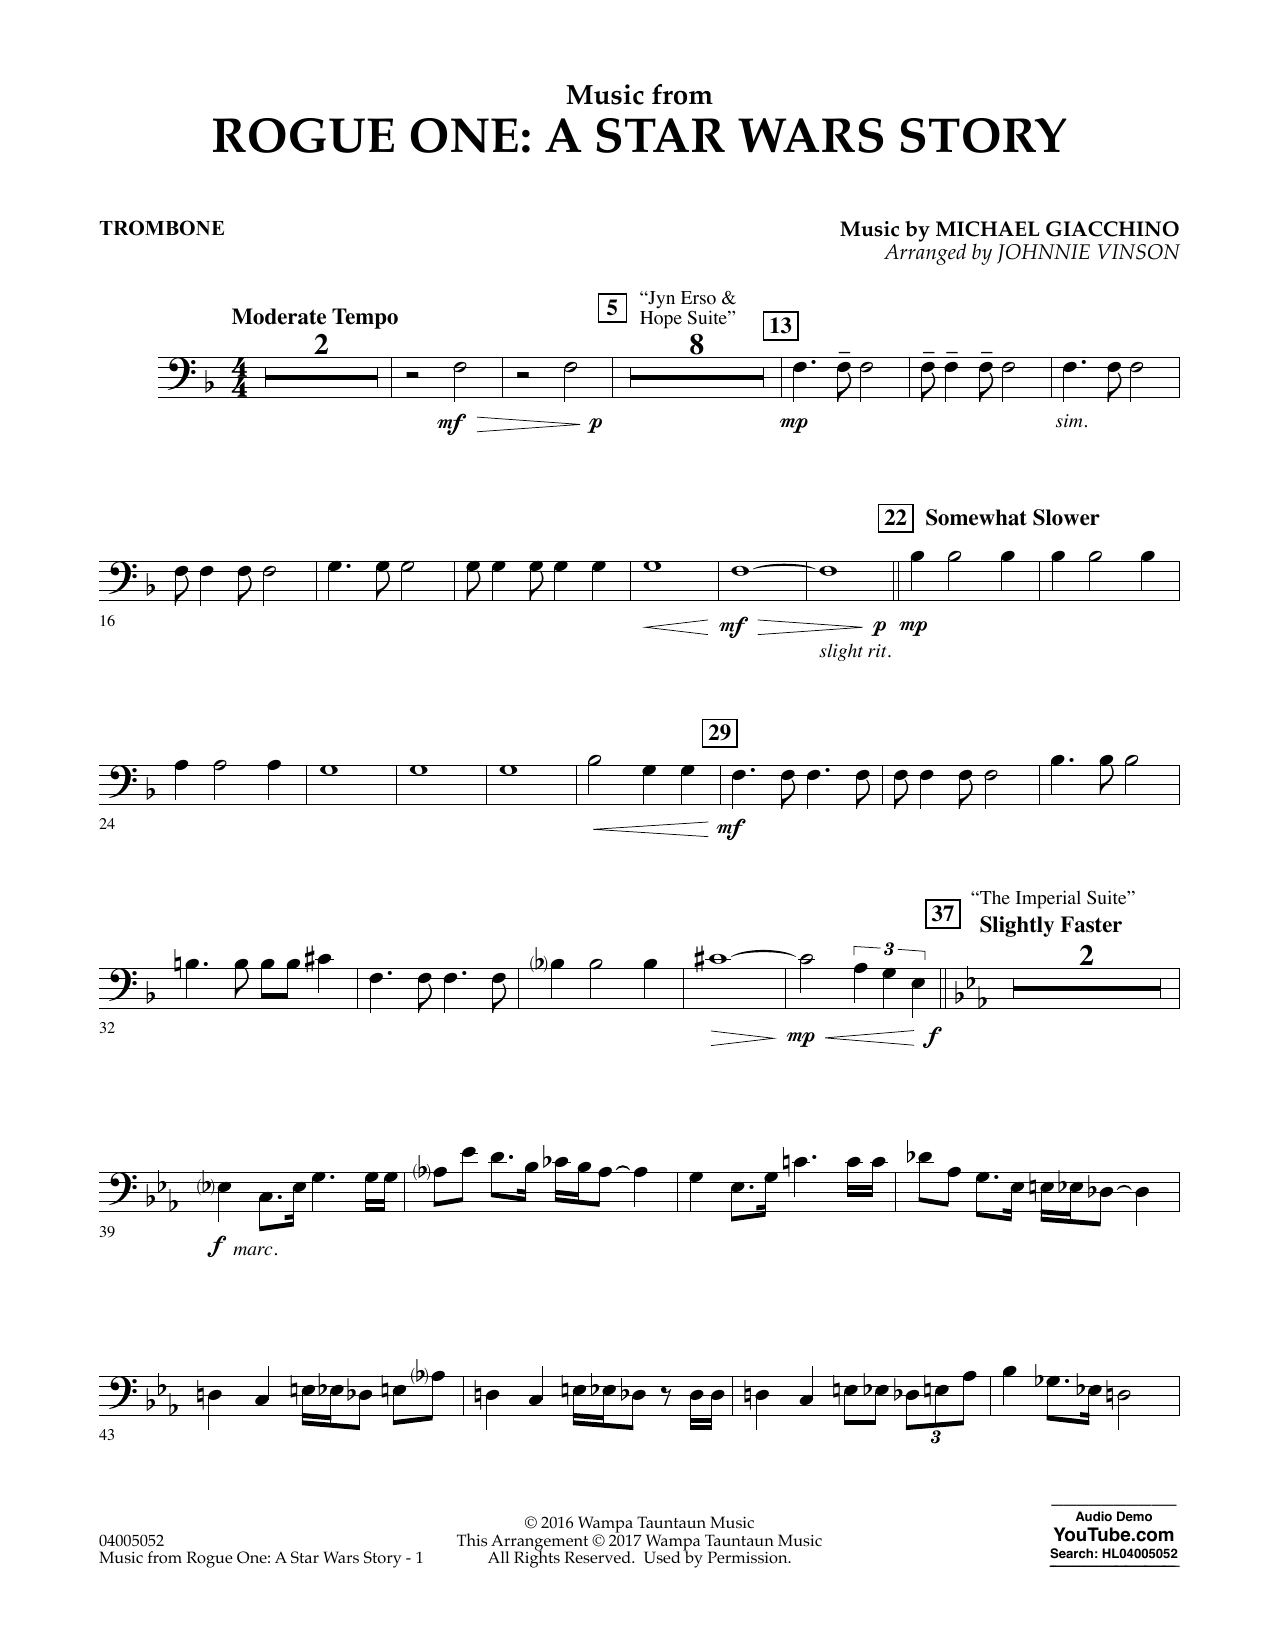 Music from Rogue One: A Star Wars Story - Trombone Sheet Music